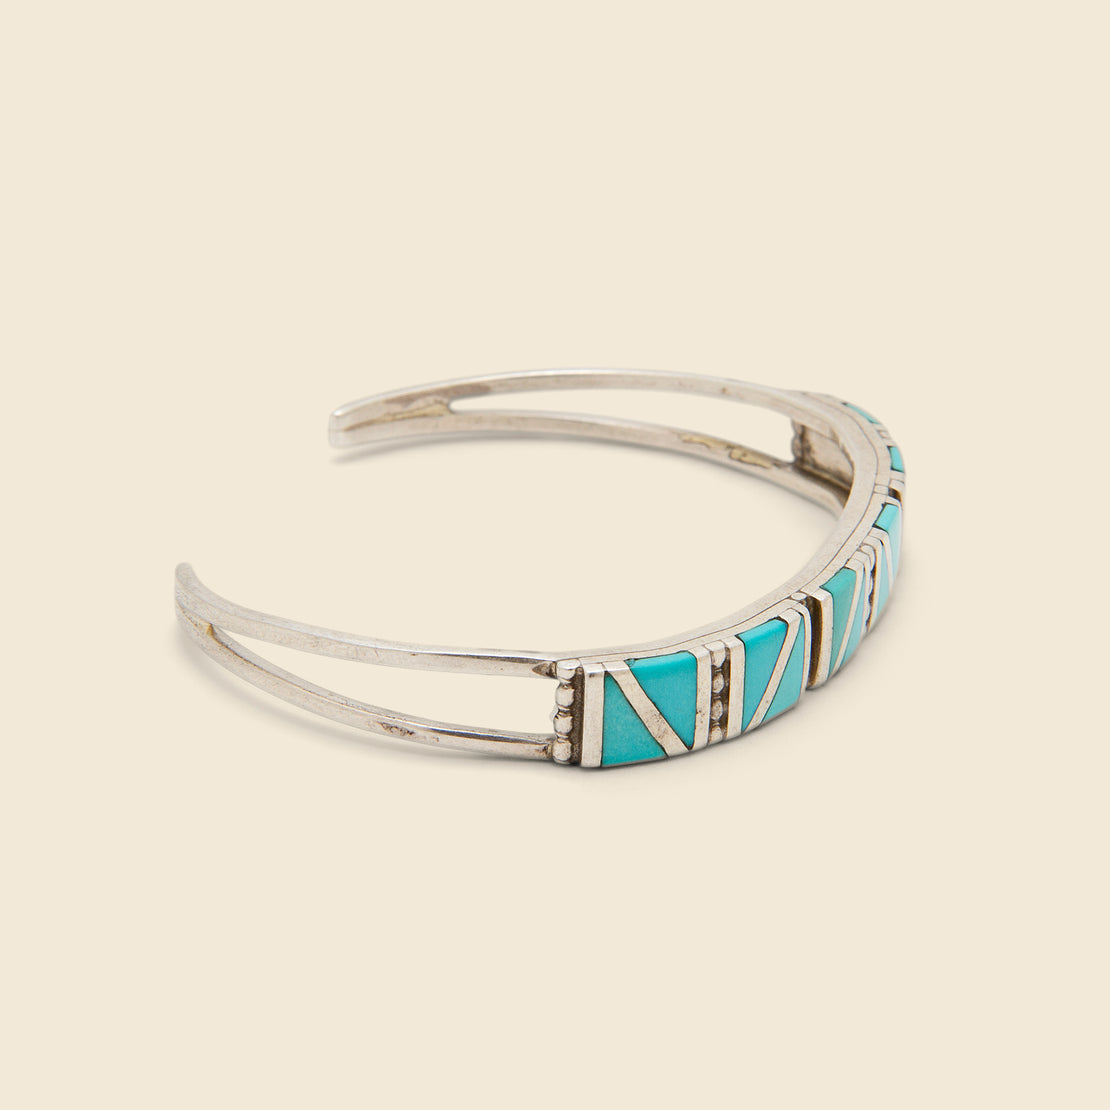 Zig Zag Triangular Turquiose Inlay Cuff - Sterling Silver